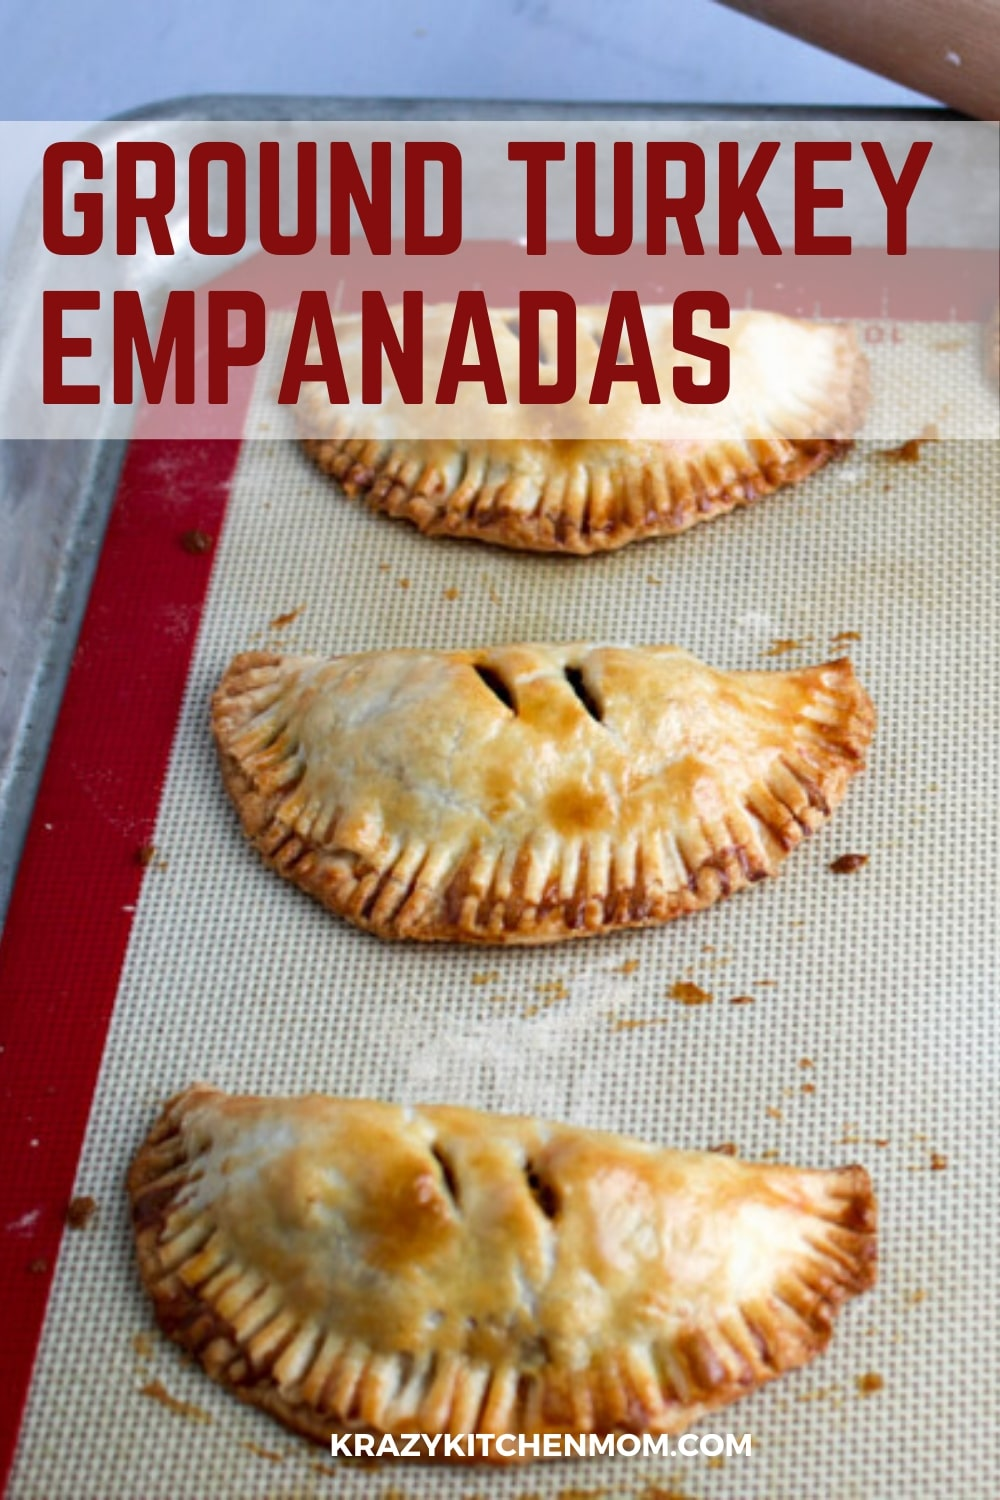 Baked Turkey Empanadas Made with Jennie-O Ground Ground Turkey Breast are an easy calorie-conscious snack or quick dinner for the entire family. via @krazykitchenmom